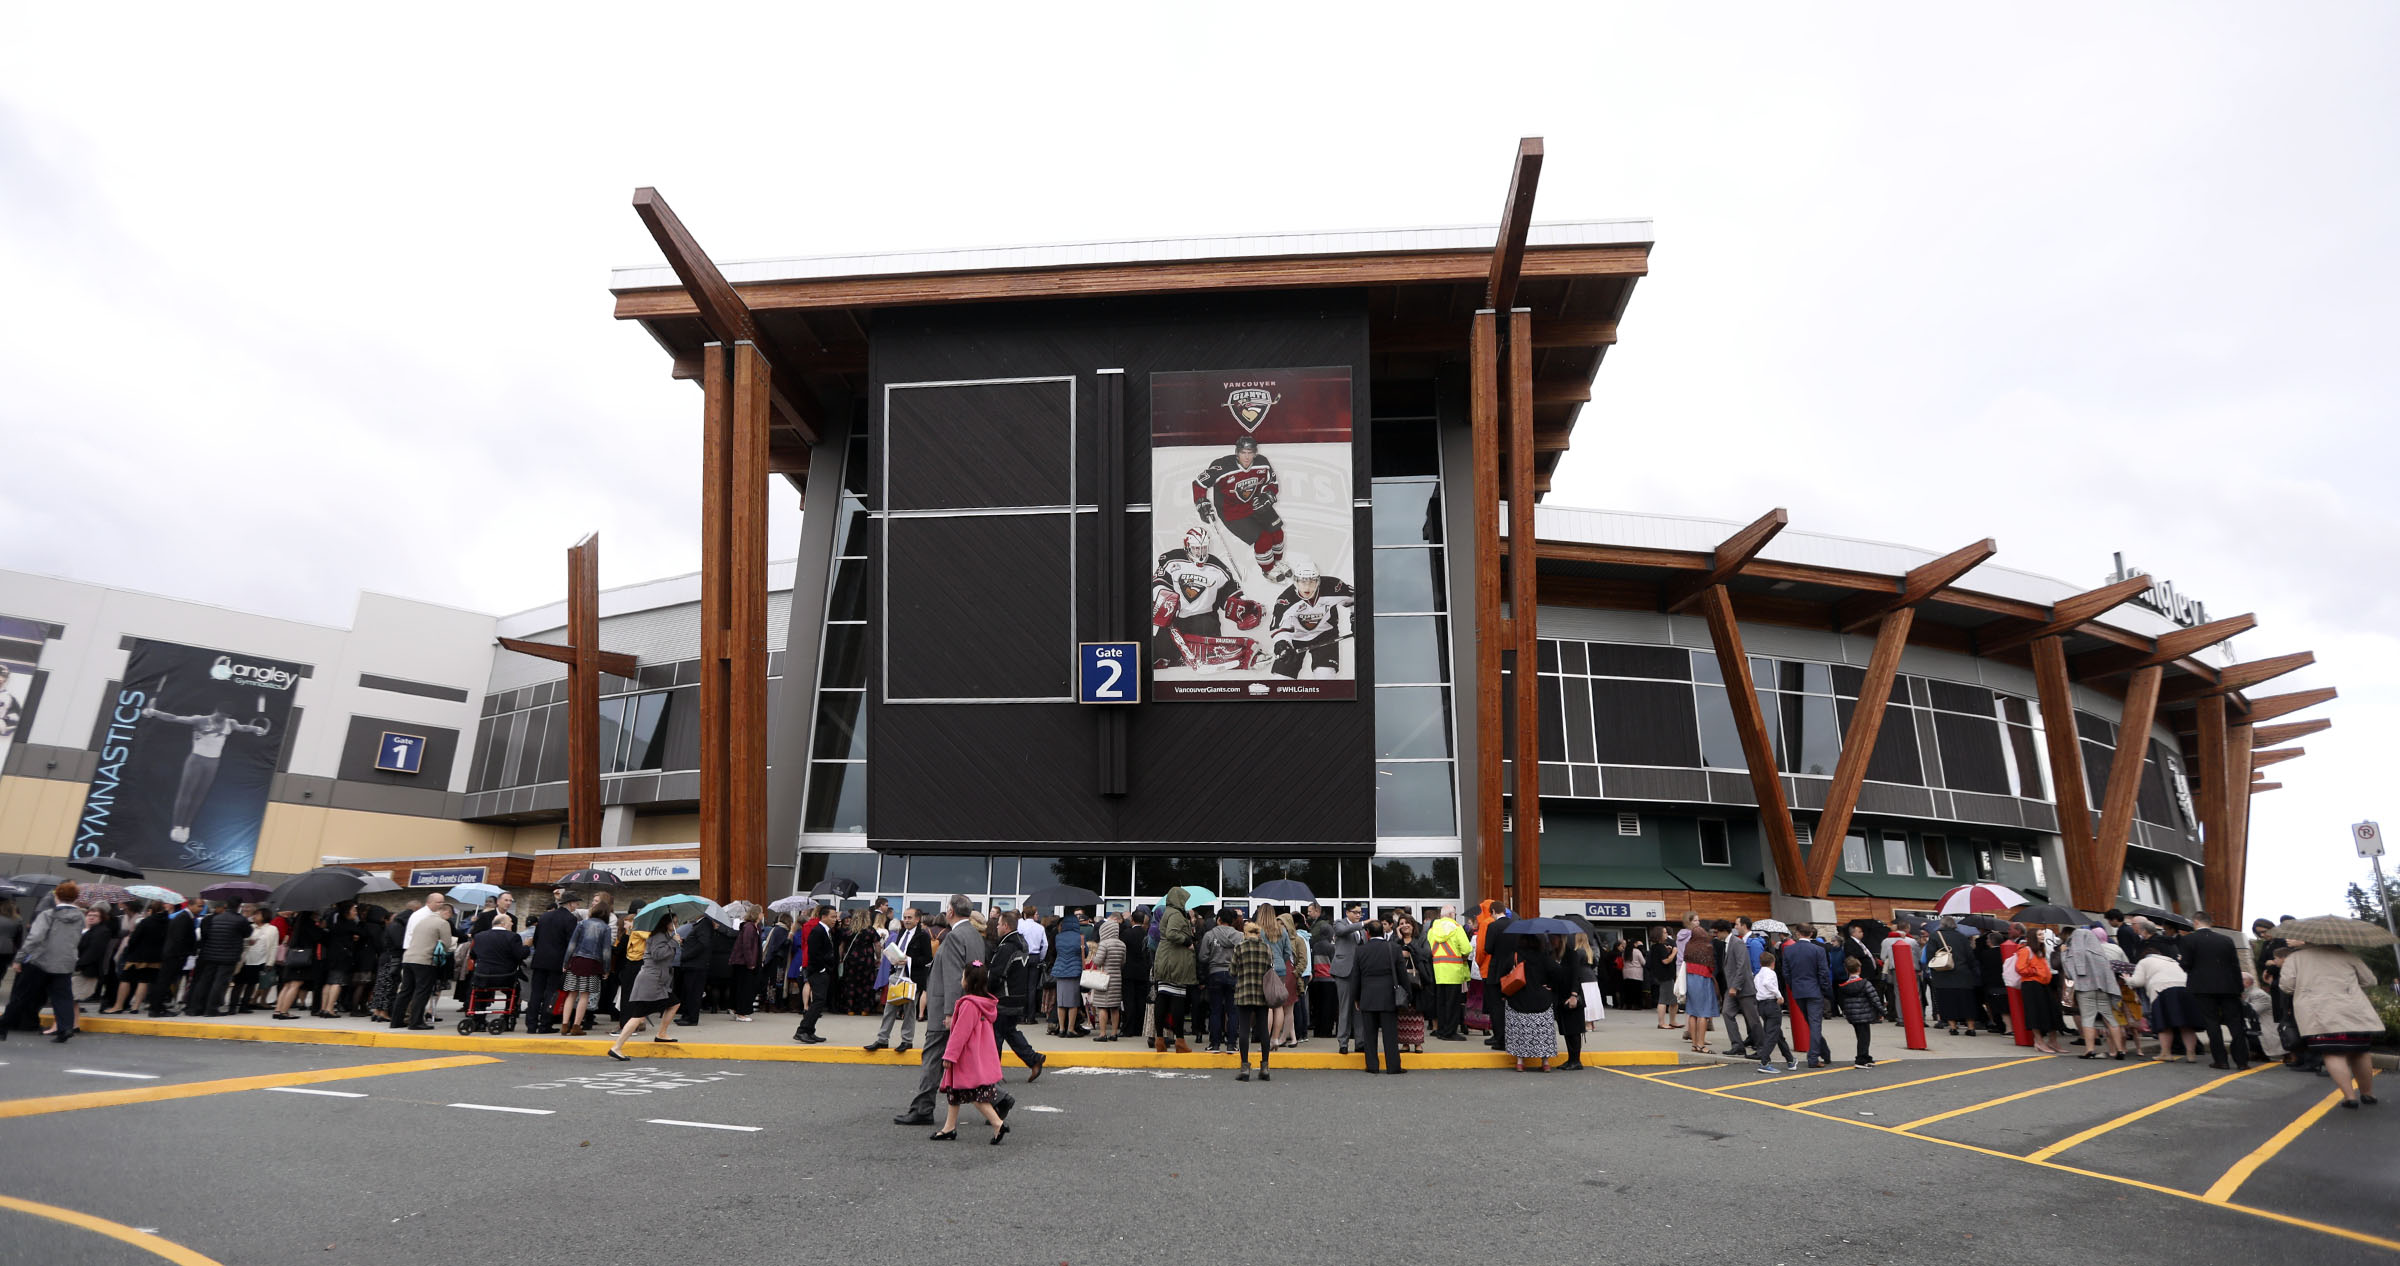 Crowds line up outside of the Langley Events Center to hear President Russell M. Nelson of The Church of Jesus Christ of Latter-day Saints speak in Langley, British Columbia, on Sunday, Sept. 16, 2018.